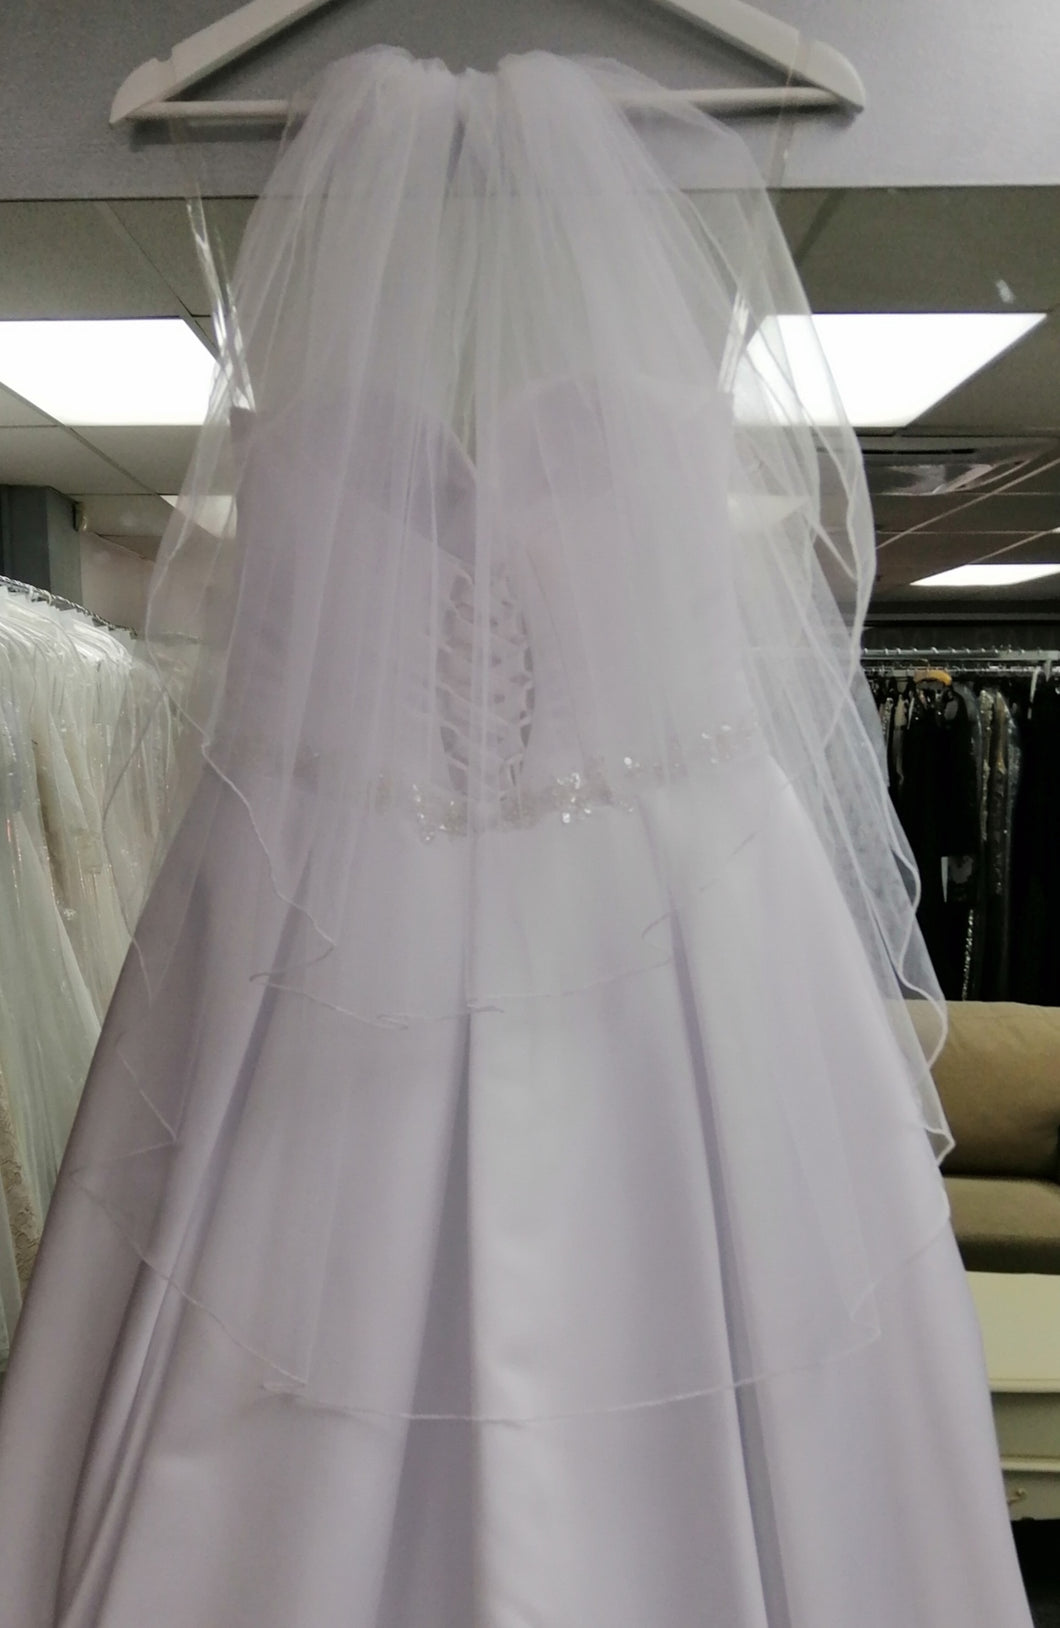 BBV6 2 layer tulle veil with finished edge.